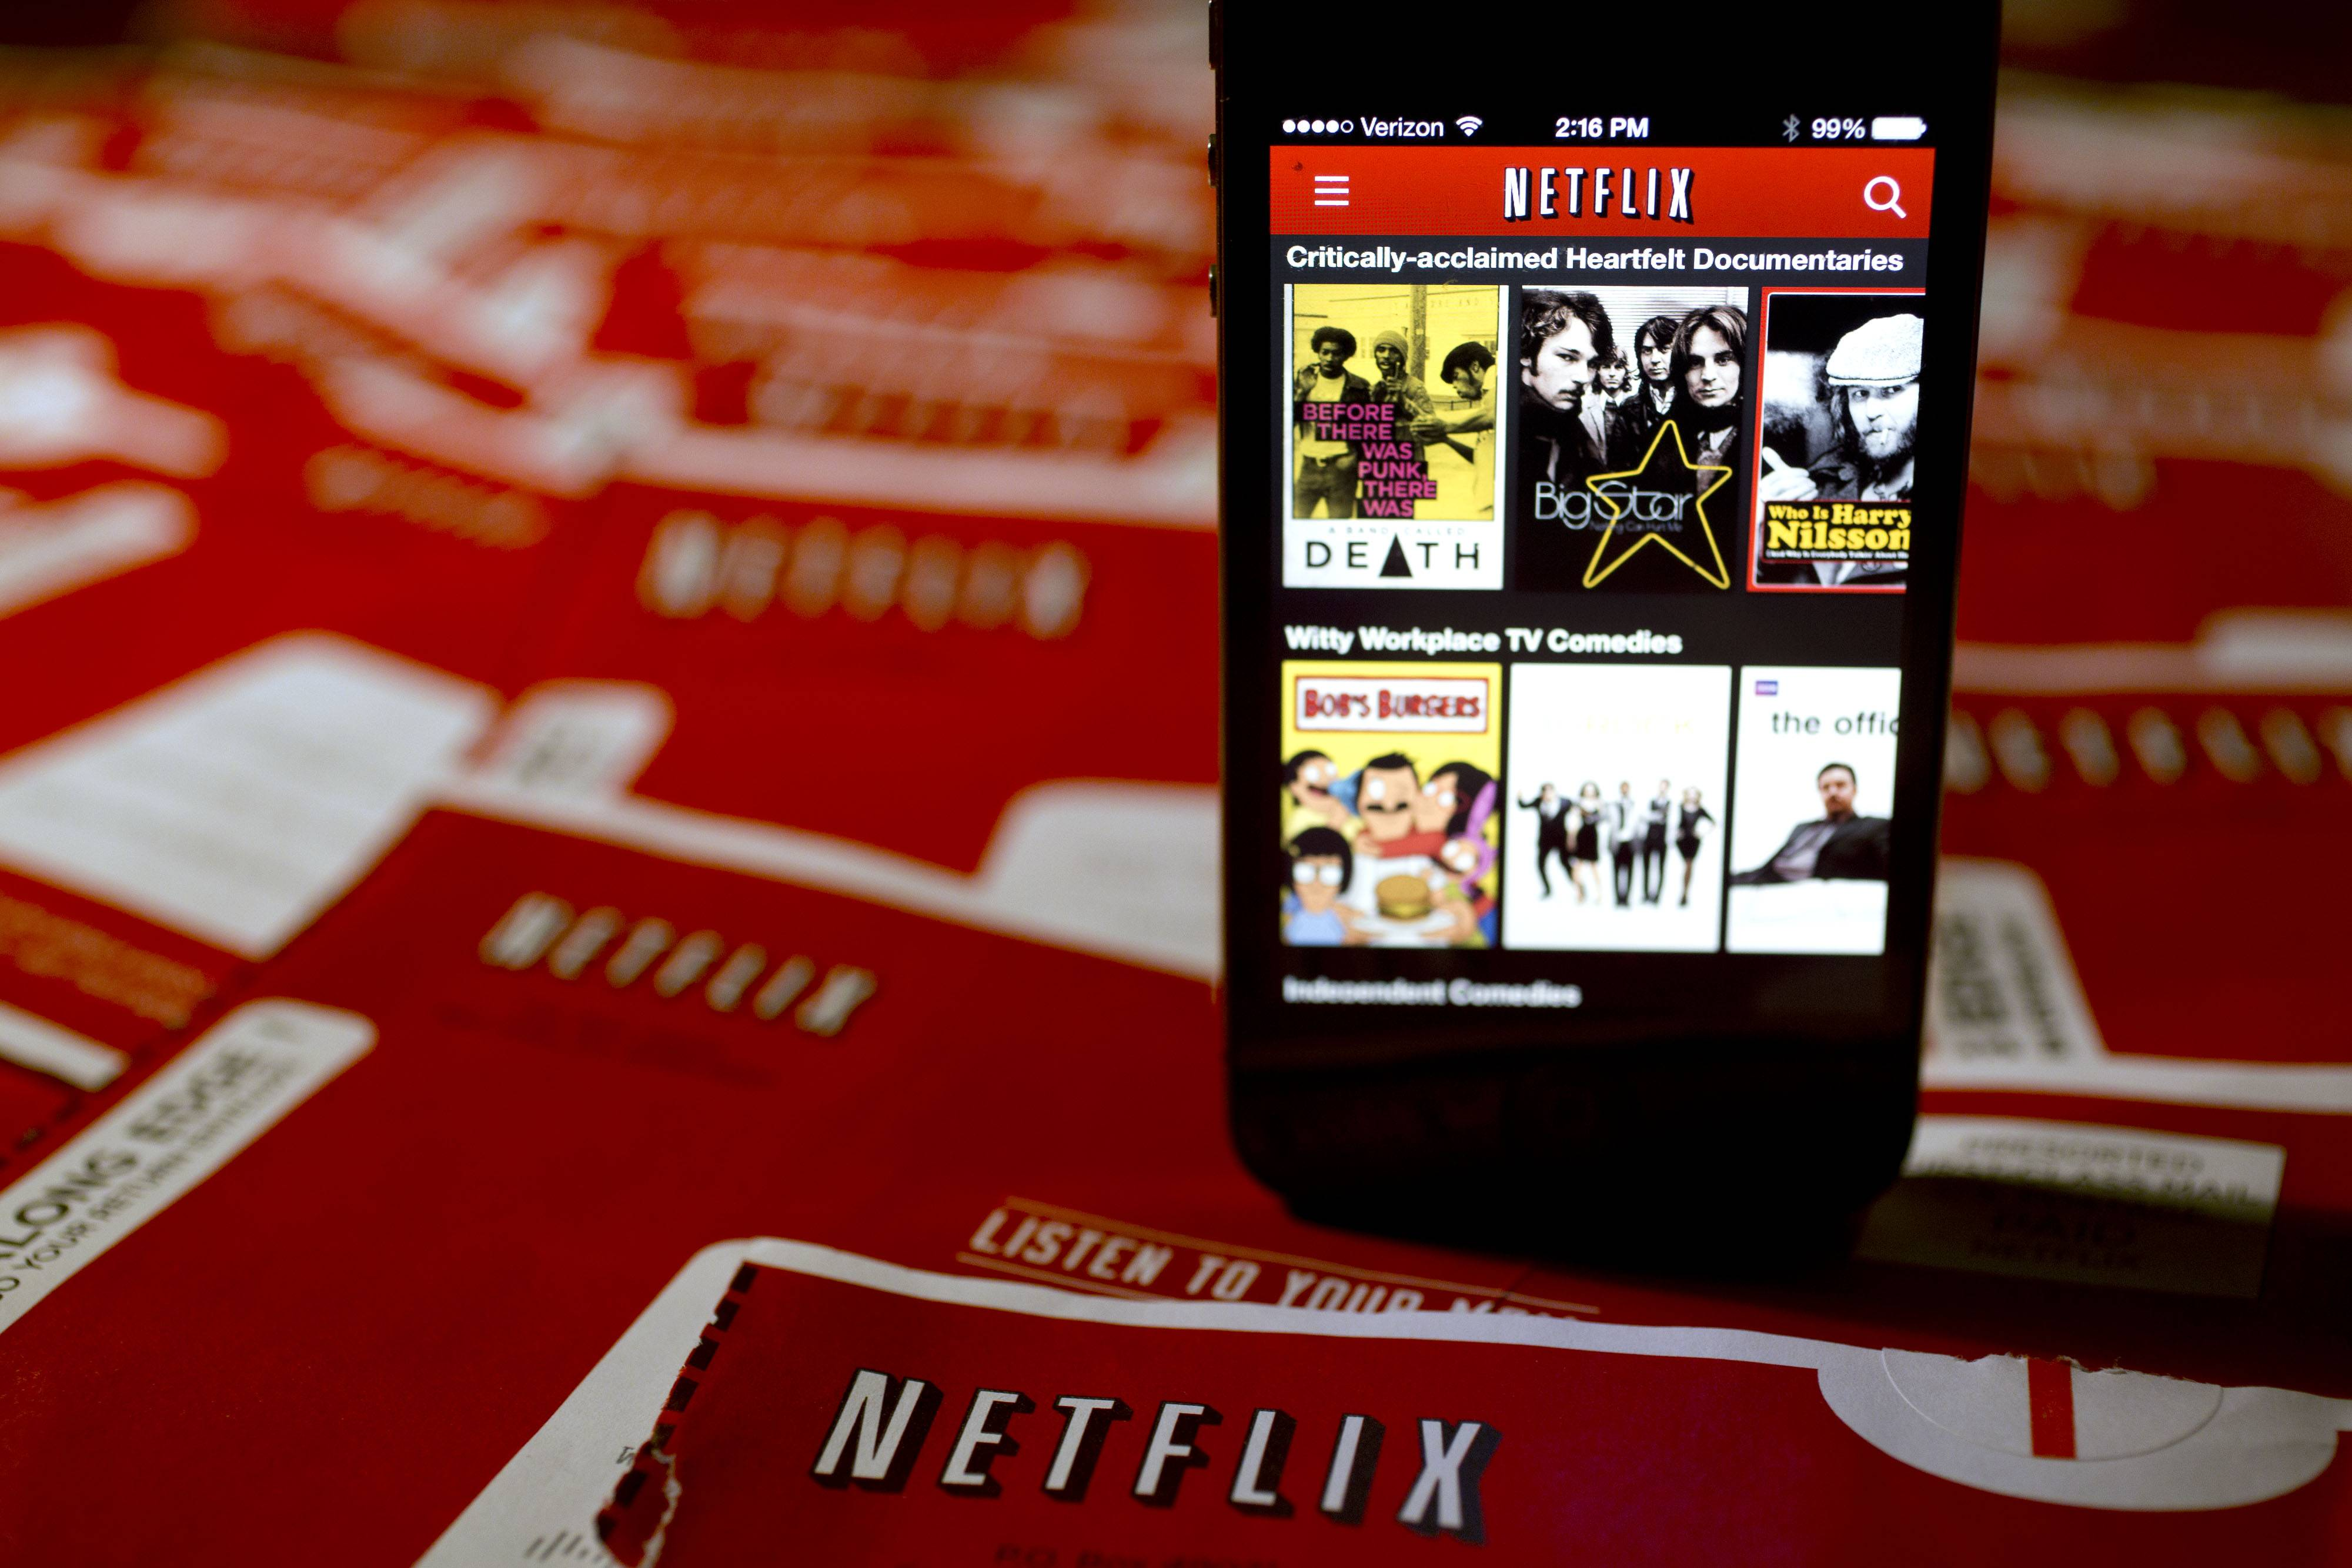 Netflix Inc. has agreed to pay for more-direct access to Comcast Corp.'s broadband network to improve speed and reliability for its video-streaming customers, according to three people familiar with the matter.